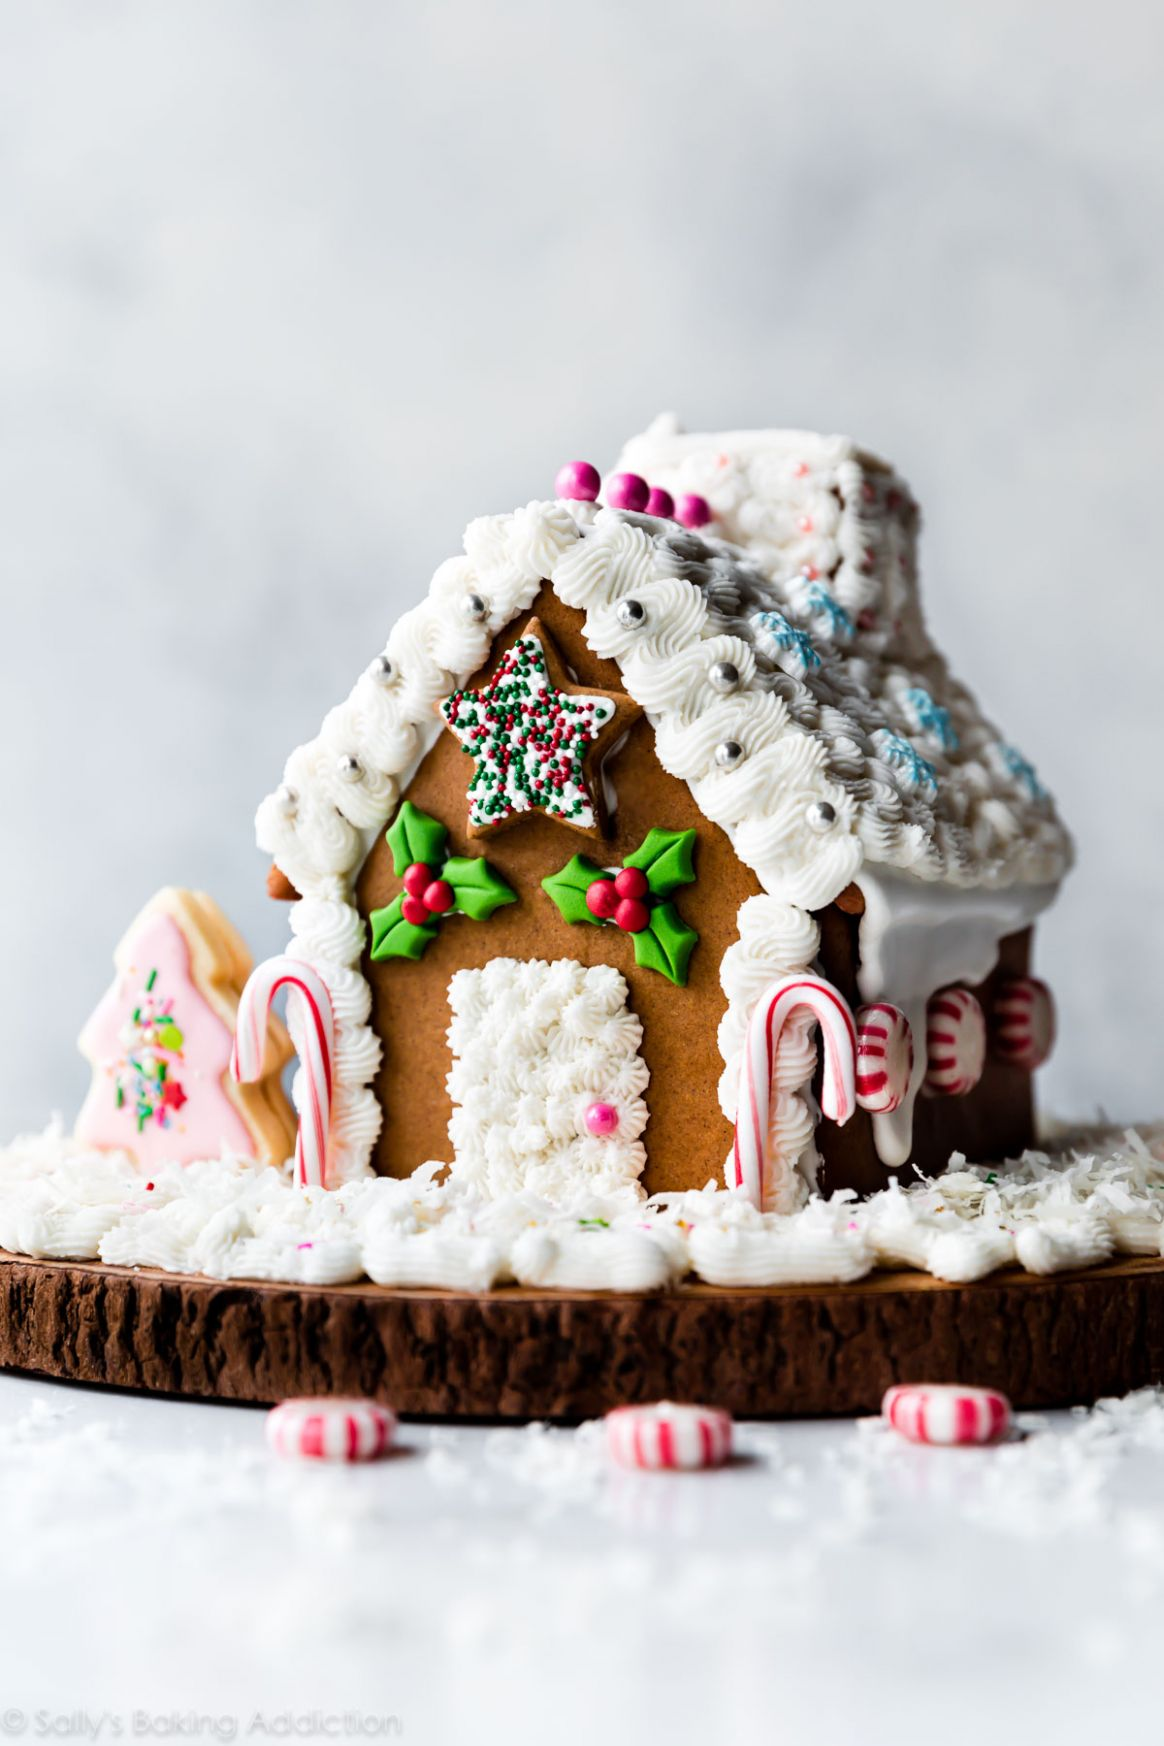 Gingerbread House Recipe (VIDEO)